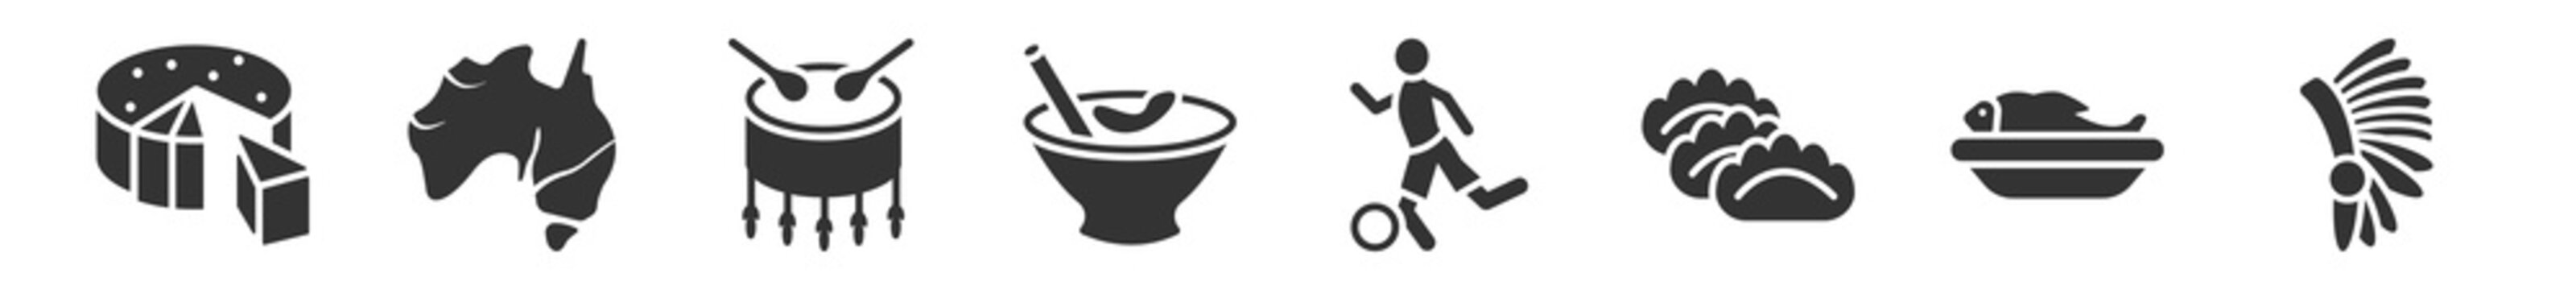 filled set of culture icons. glyph vector icons such as goat cheese, australian continent, native american drum, crema catalana, brazil soccer player, indian headdress. vector illustration.